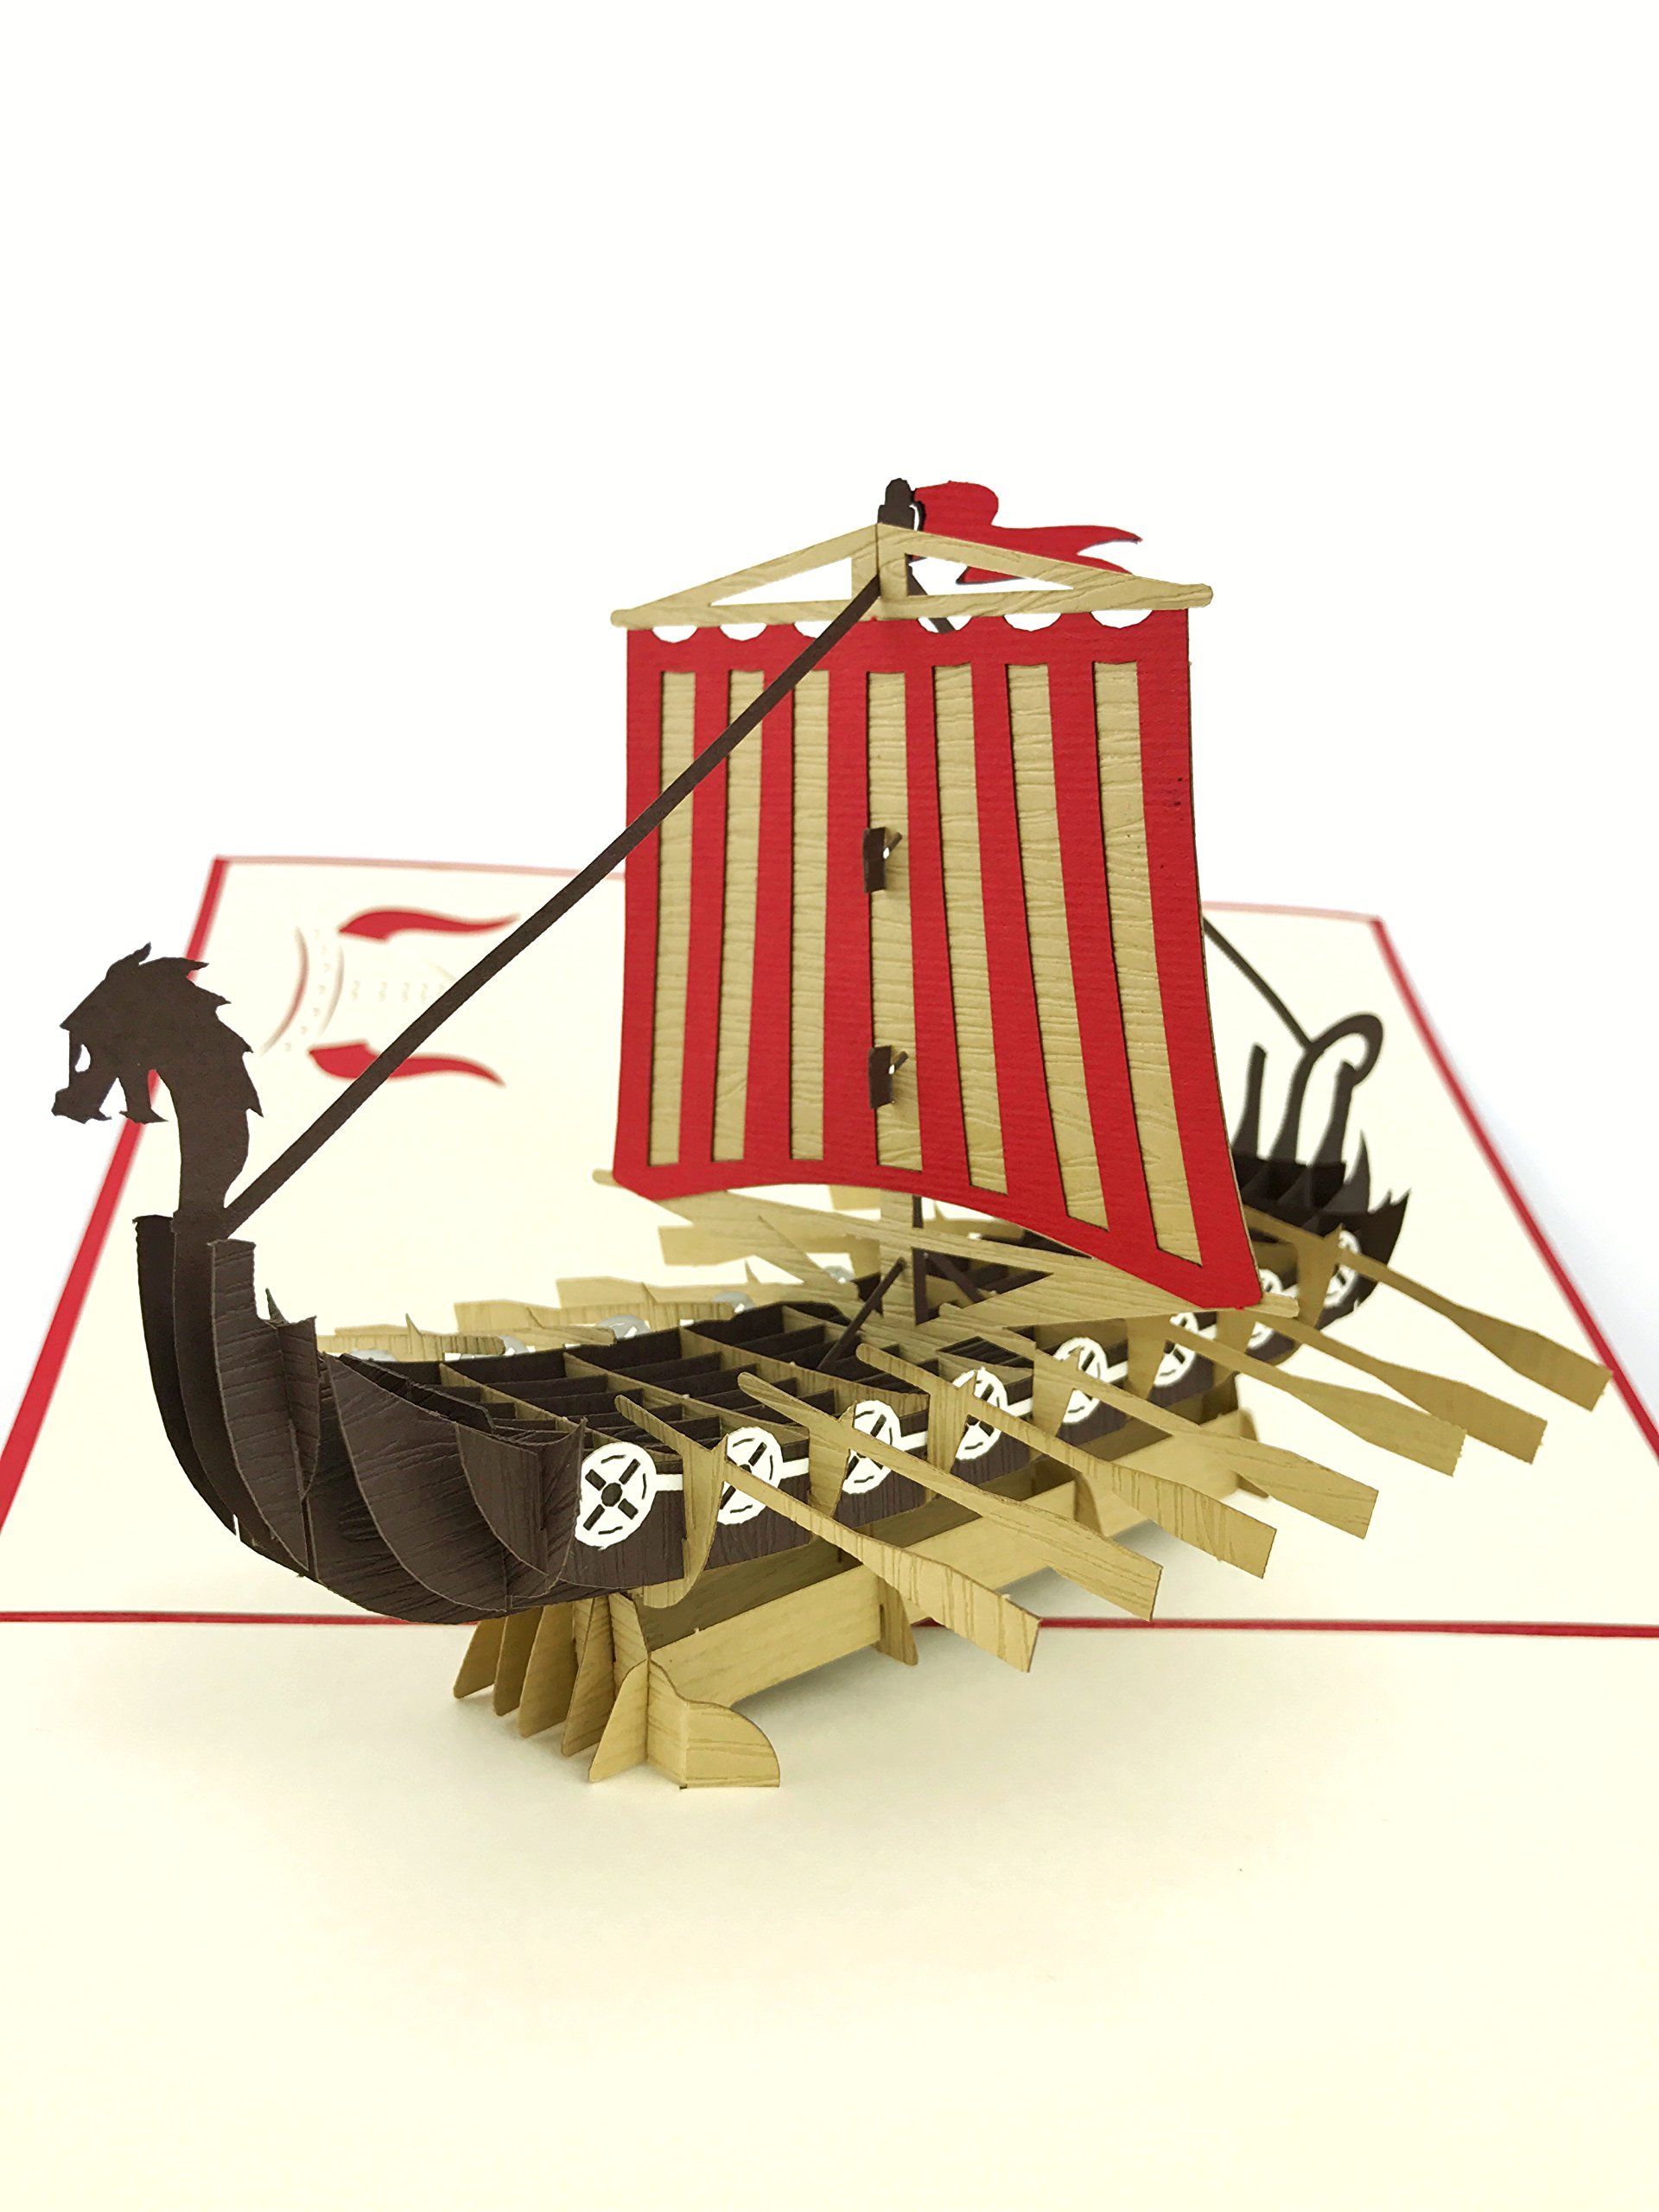 PopLife Colorful Viking Ship Pop Up Card for All Occasions - Happy Birthday, Congratulations, Retirement, Anniversary, Fathers Day - Travelers, Axe Warriors - Folds Flat for Mailing